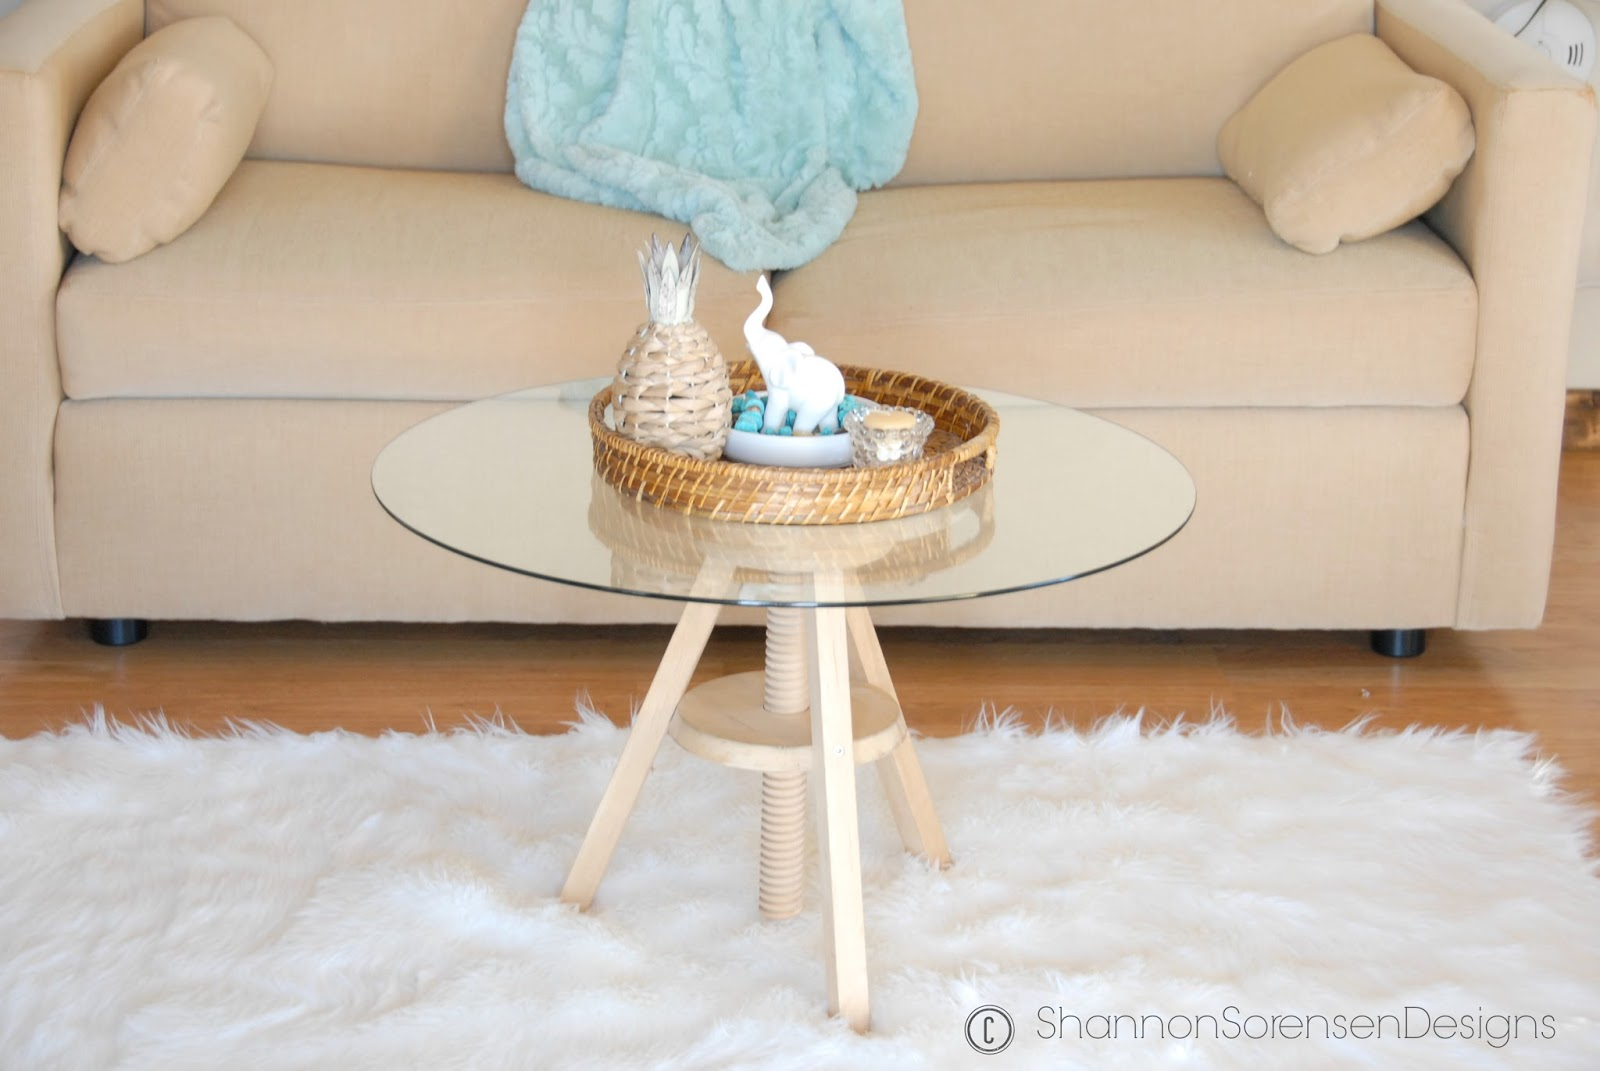 diy coffee table unique ideas, different coffee table base ideas